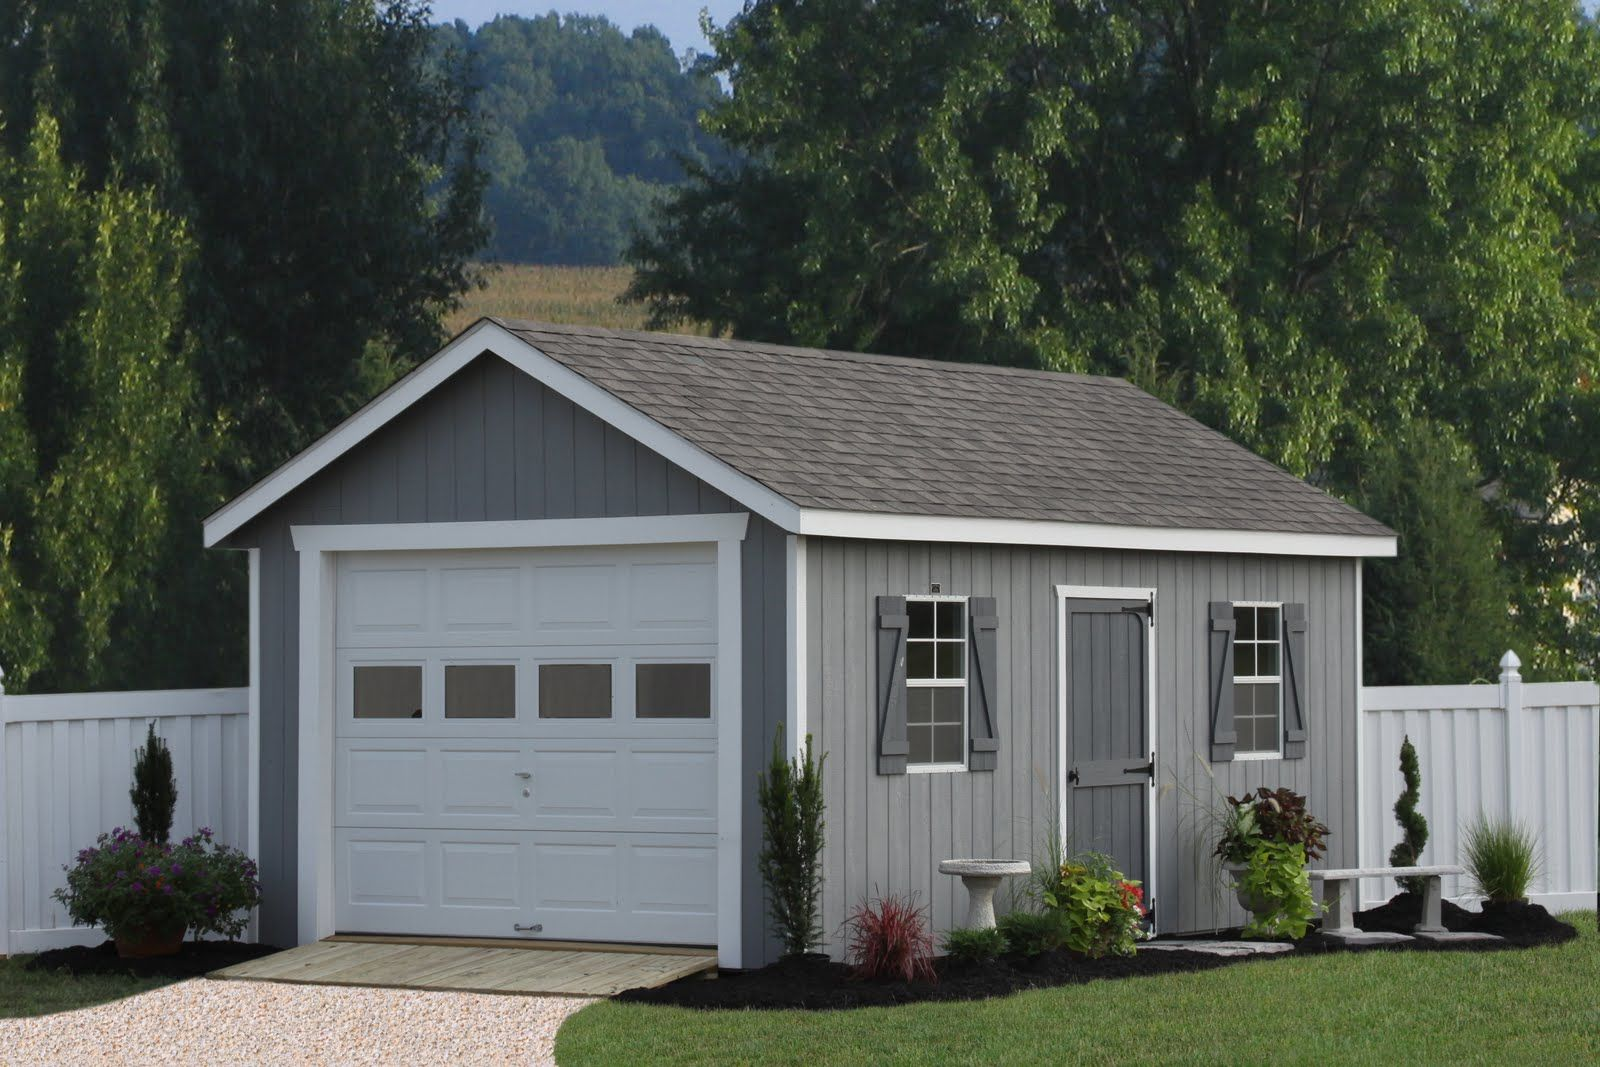 i large f imager heritage painted new single shed board car unlimited door garage double siding storage batten garages with gallery sheds england backyard